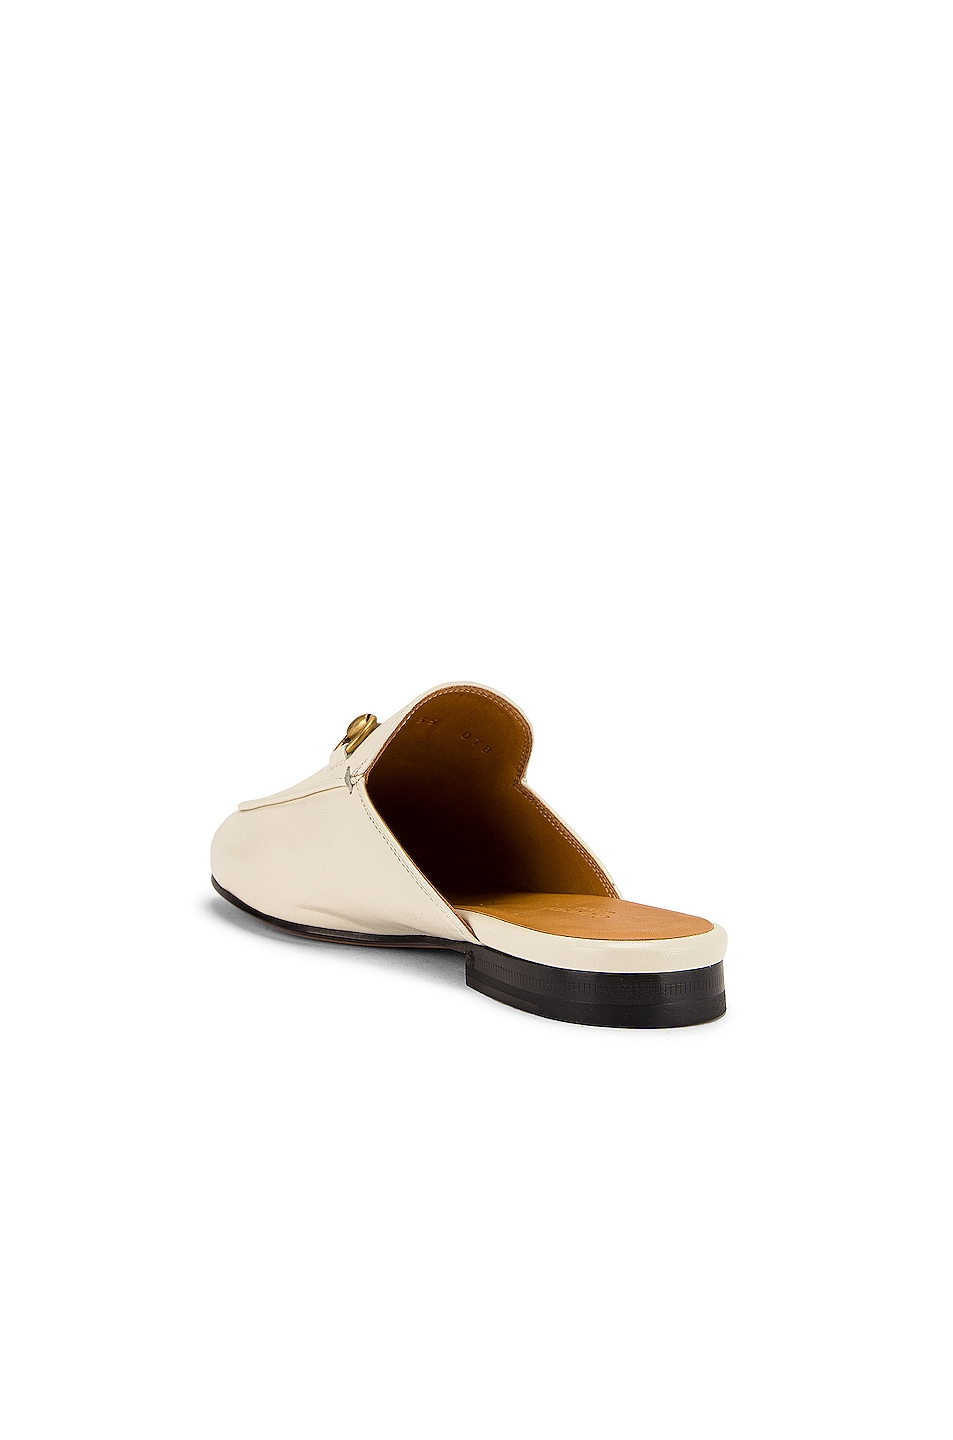 Image 3 of Gucci Princetown Slides in Mystic White